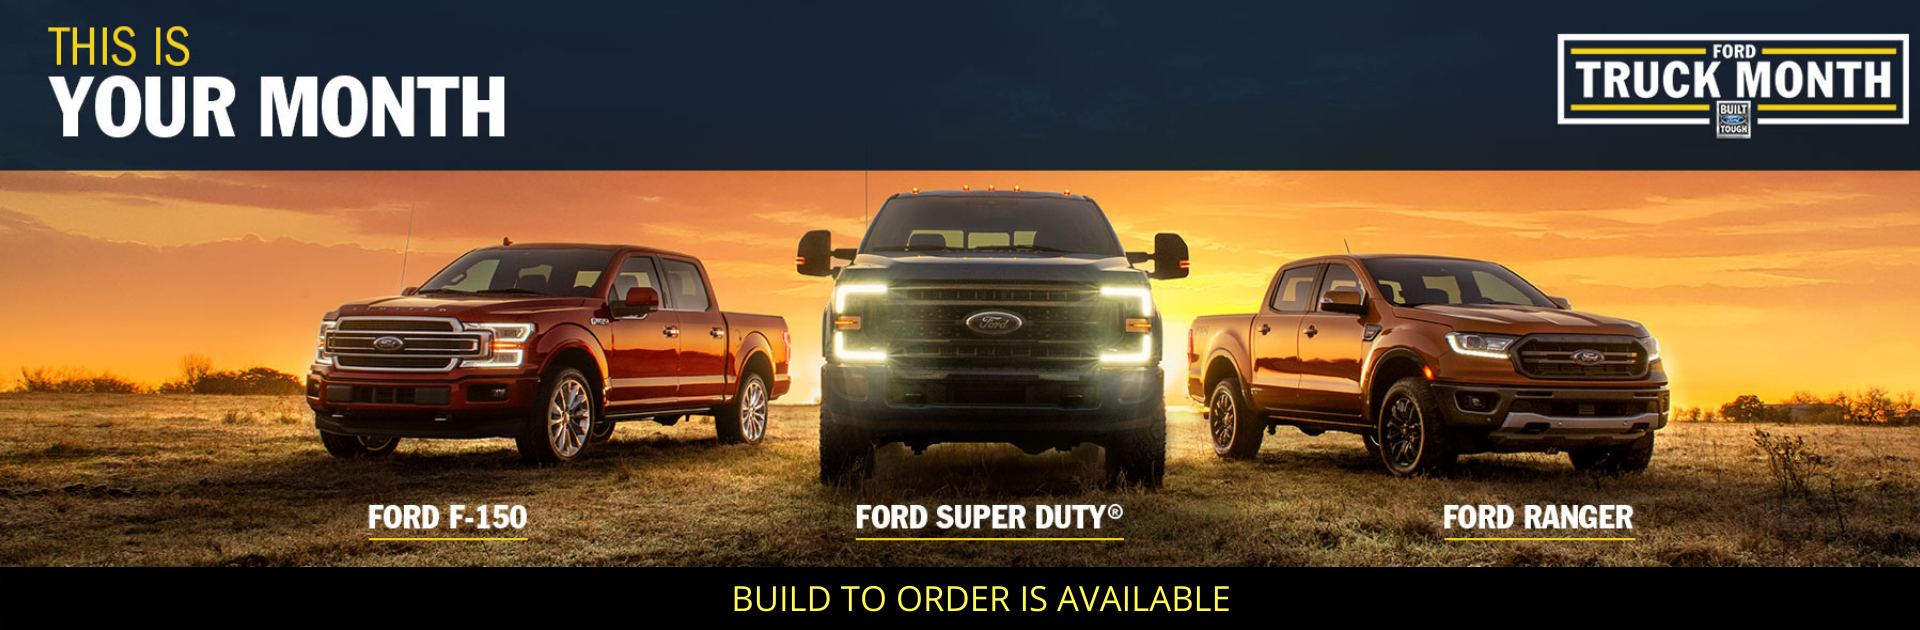 Ford Truck Month Super Duty F 150 Ranger